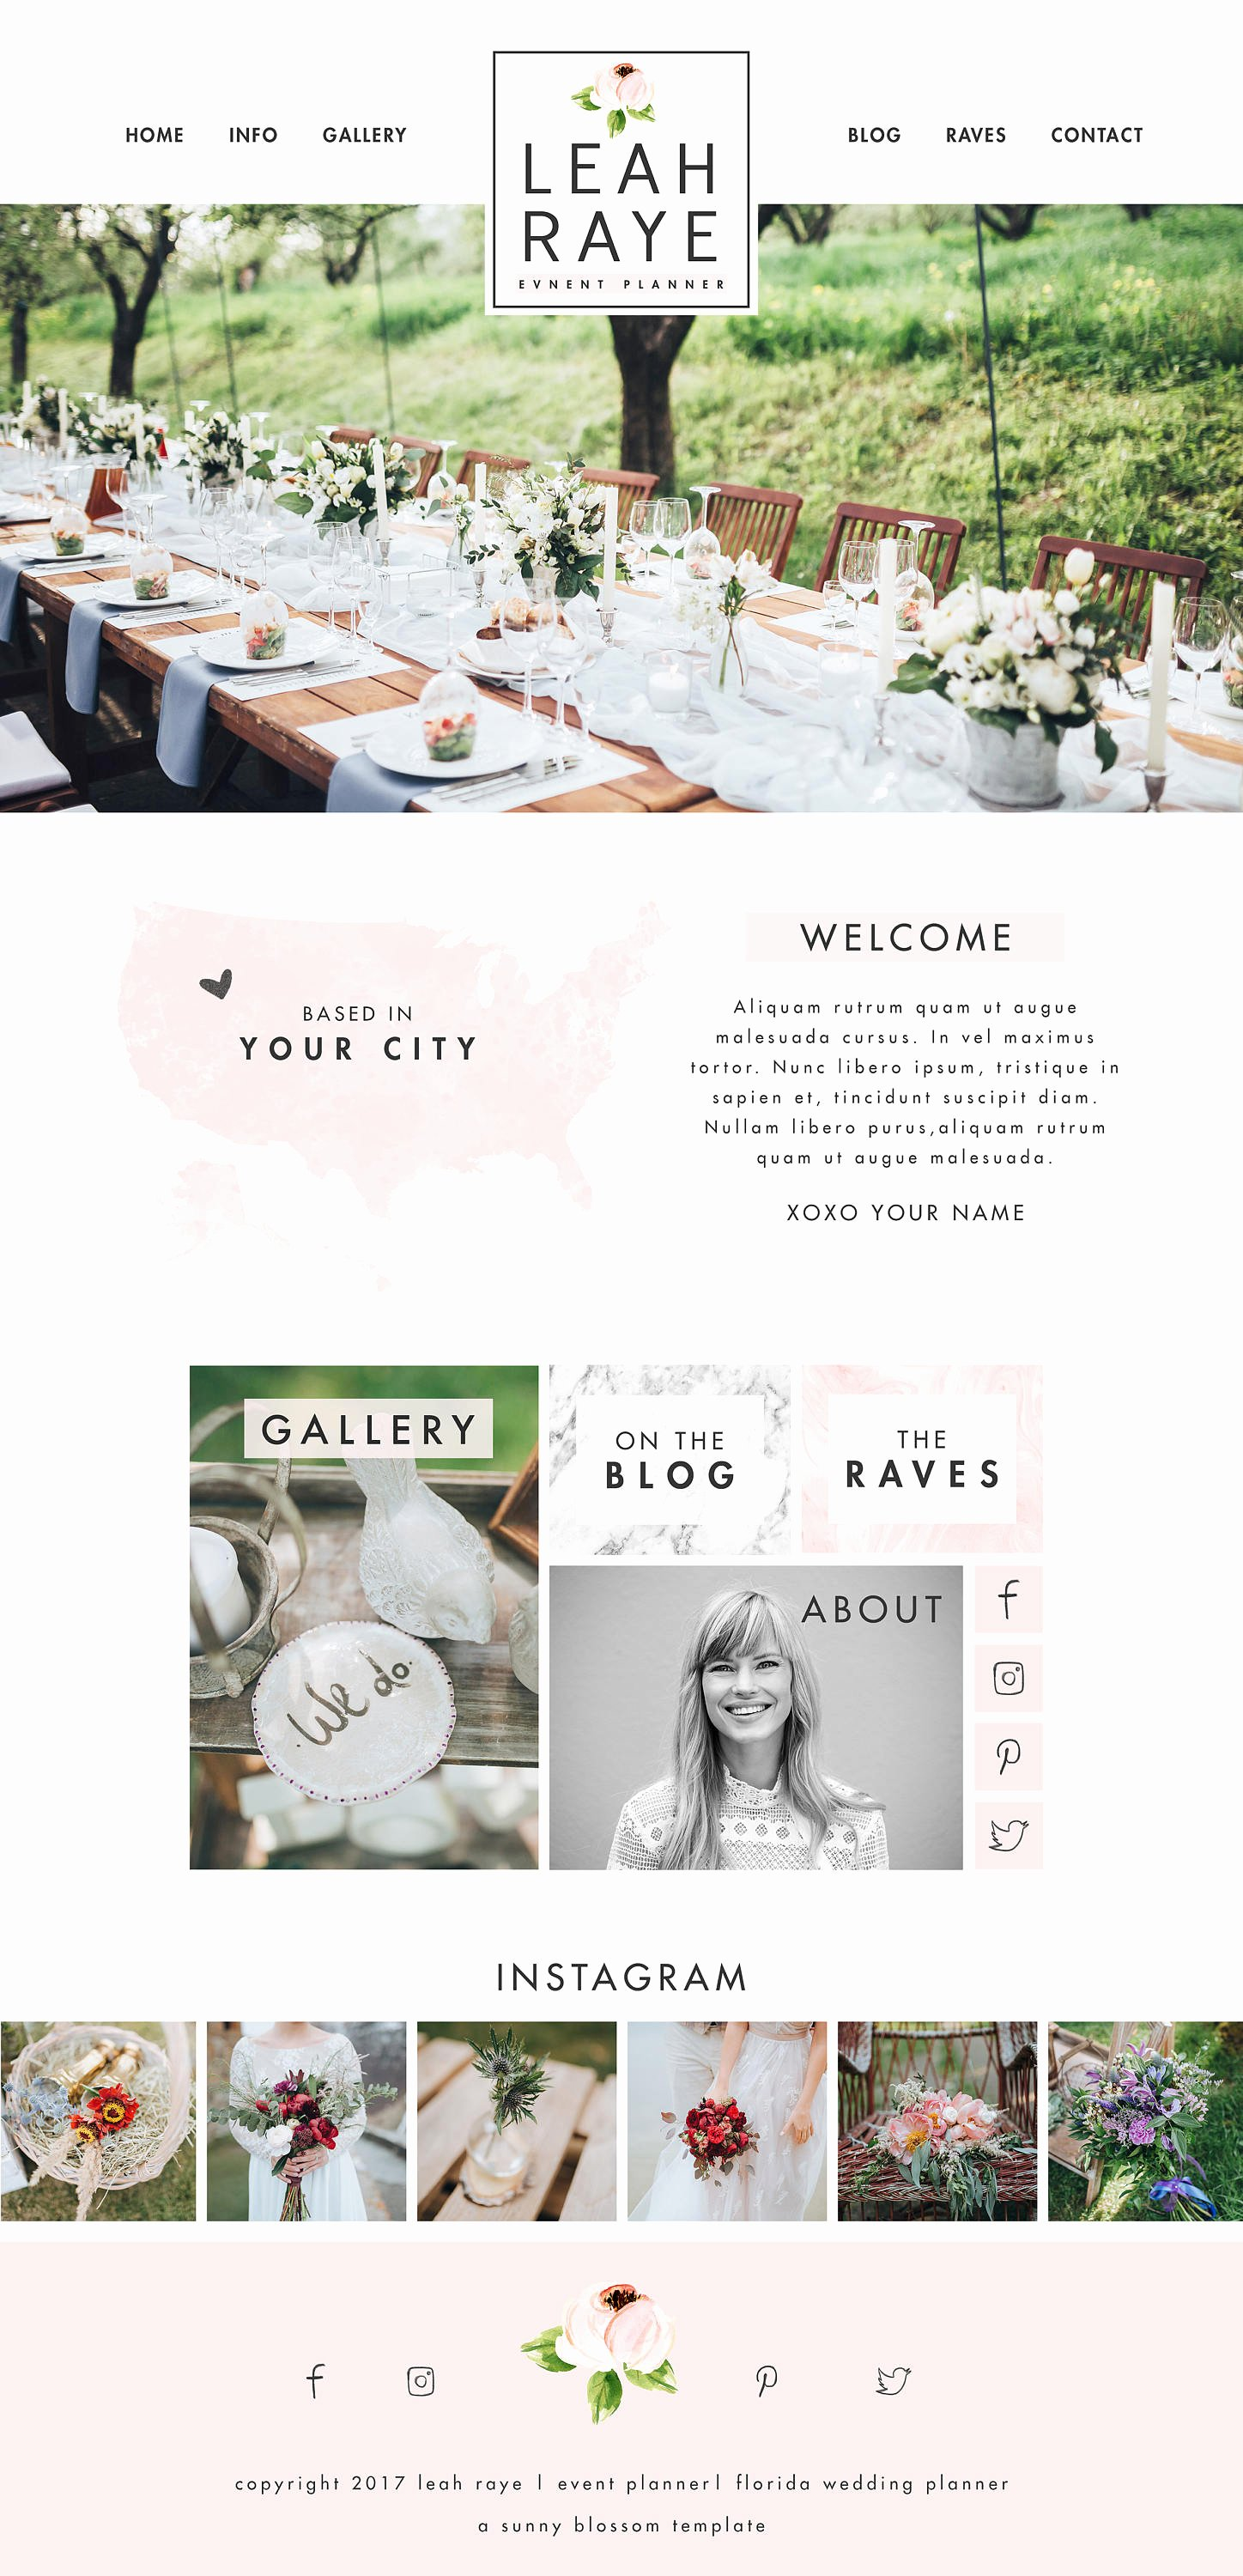 Wedding Planner Website Template Lovely Wix Website Design Website Template Wedding Planner Website